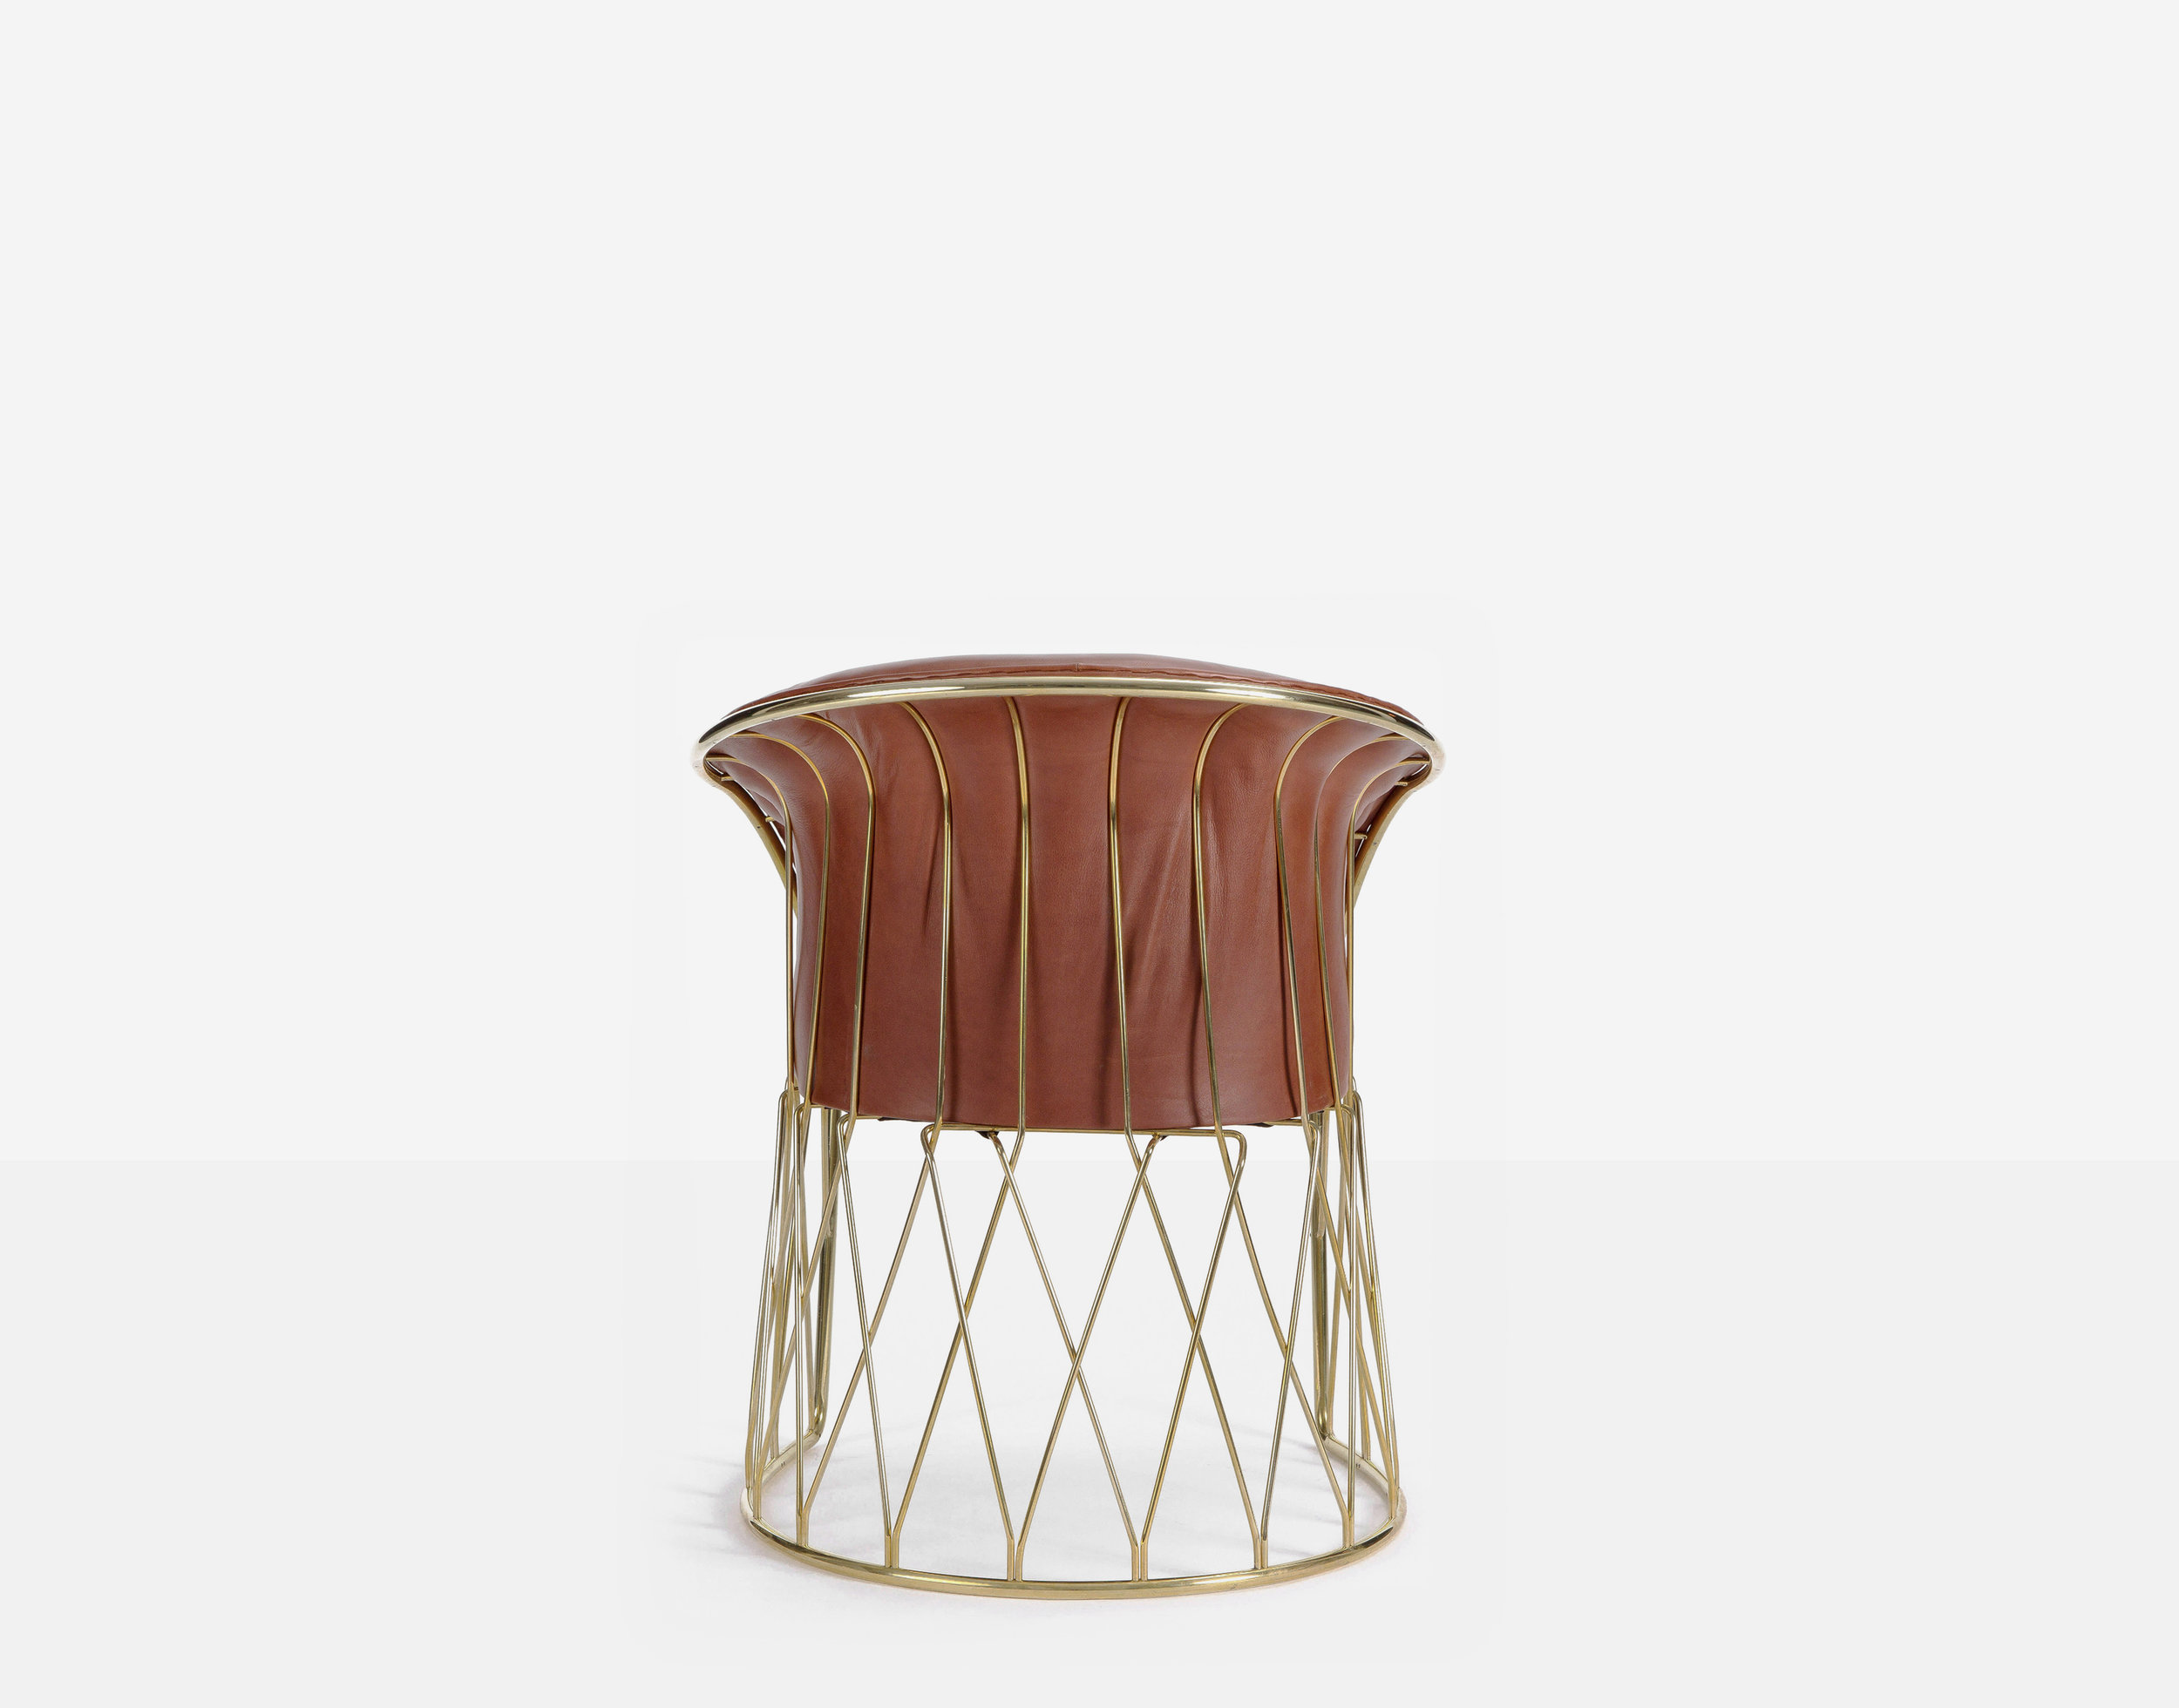 Luteca_PRV_Equipal-Chair_Brown-Leather_Polished-Brass_B-W.jpg